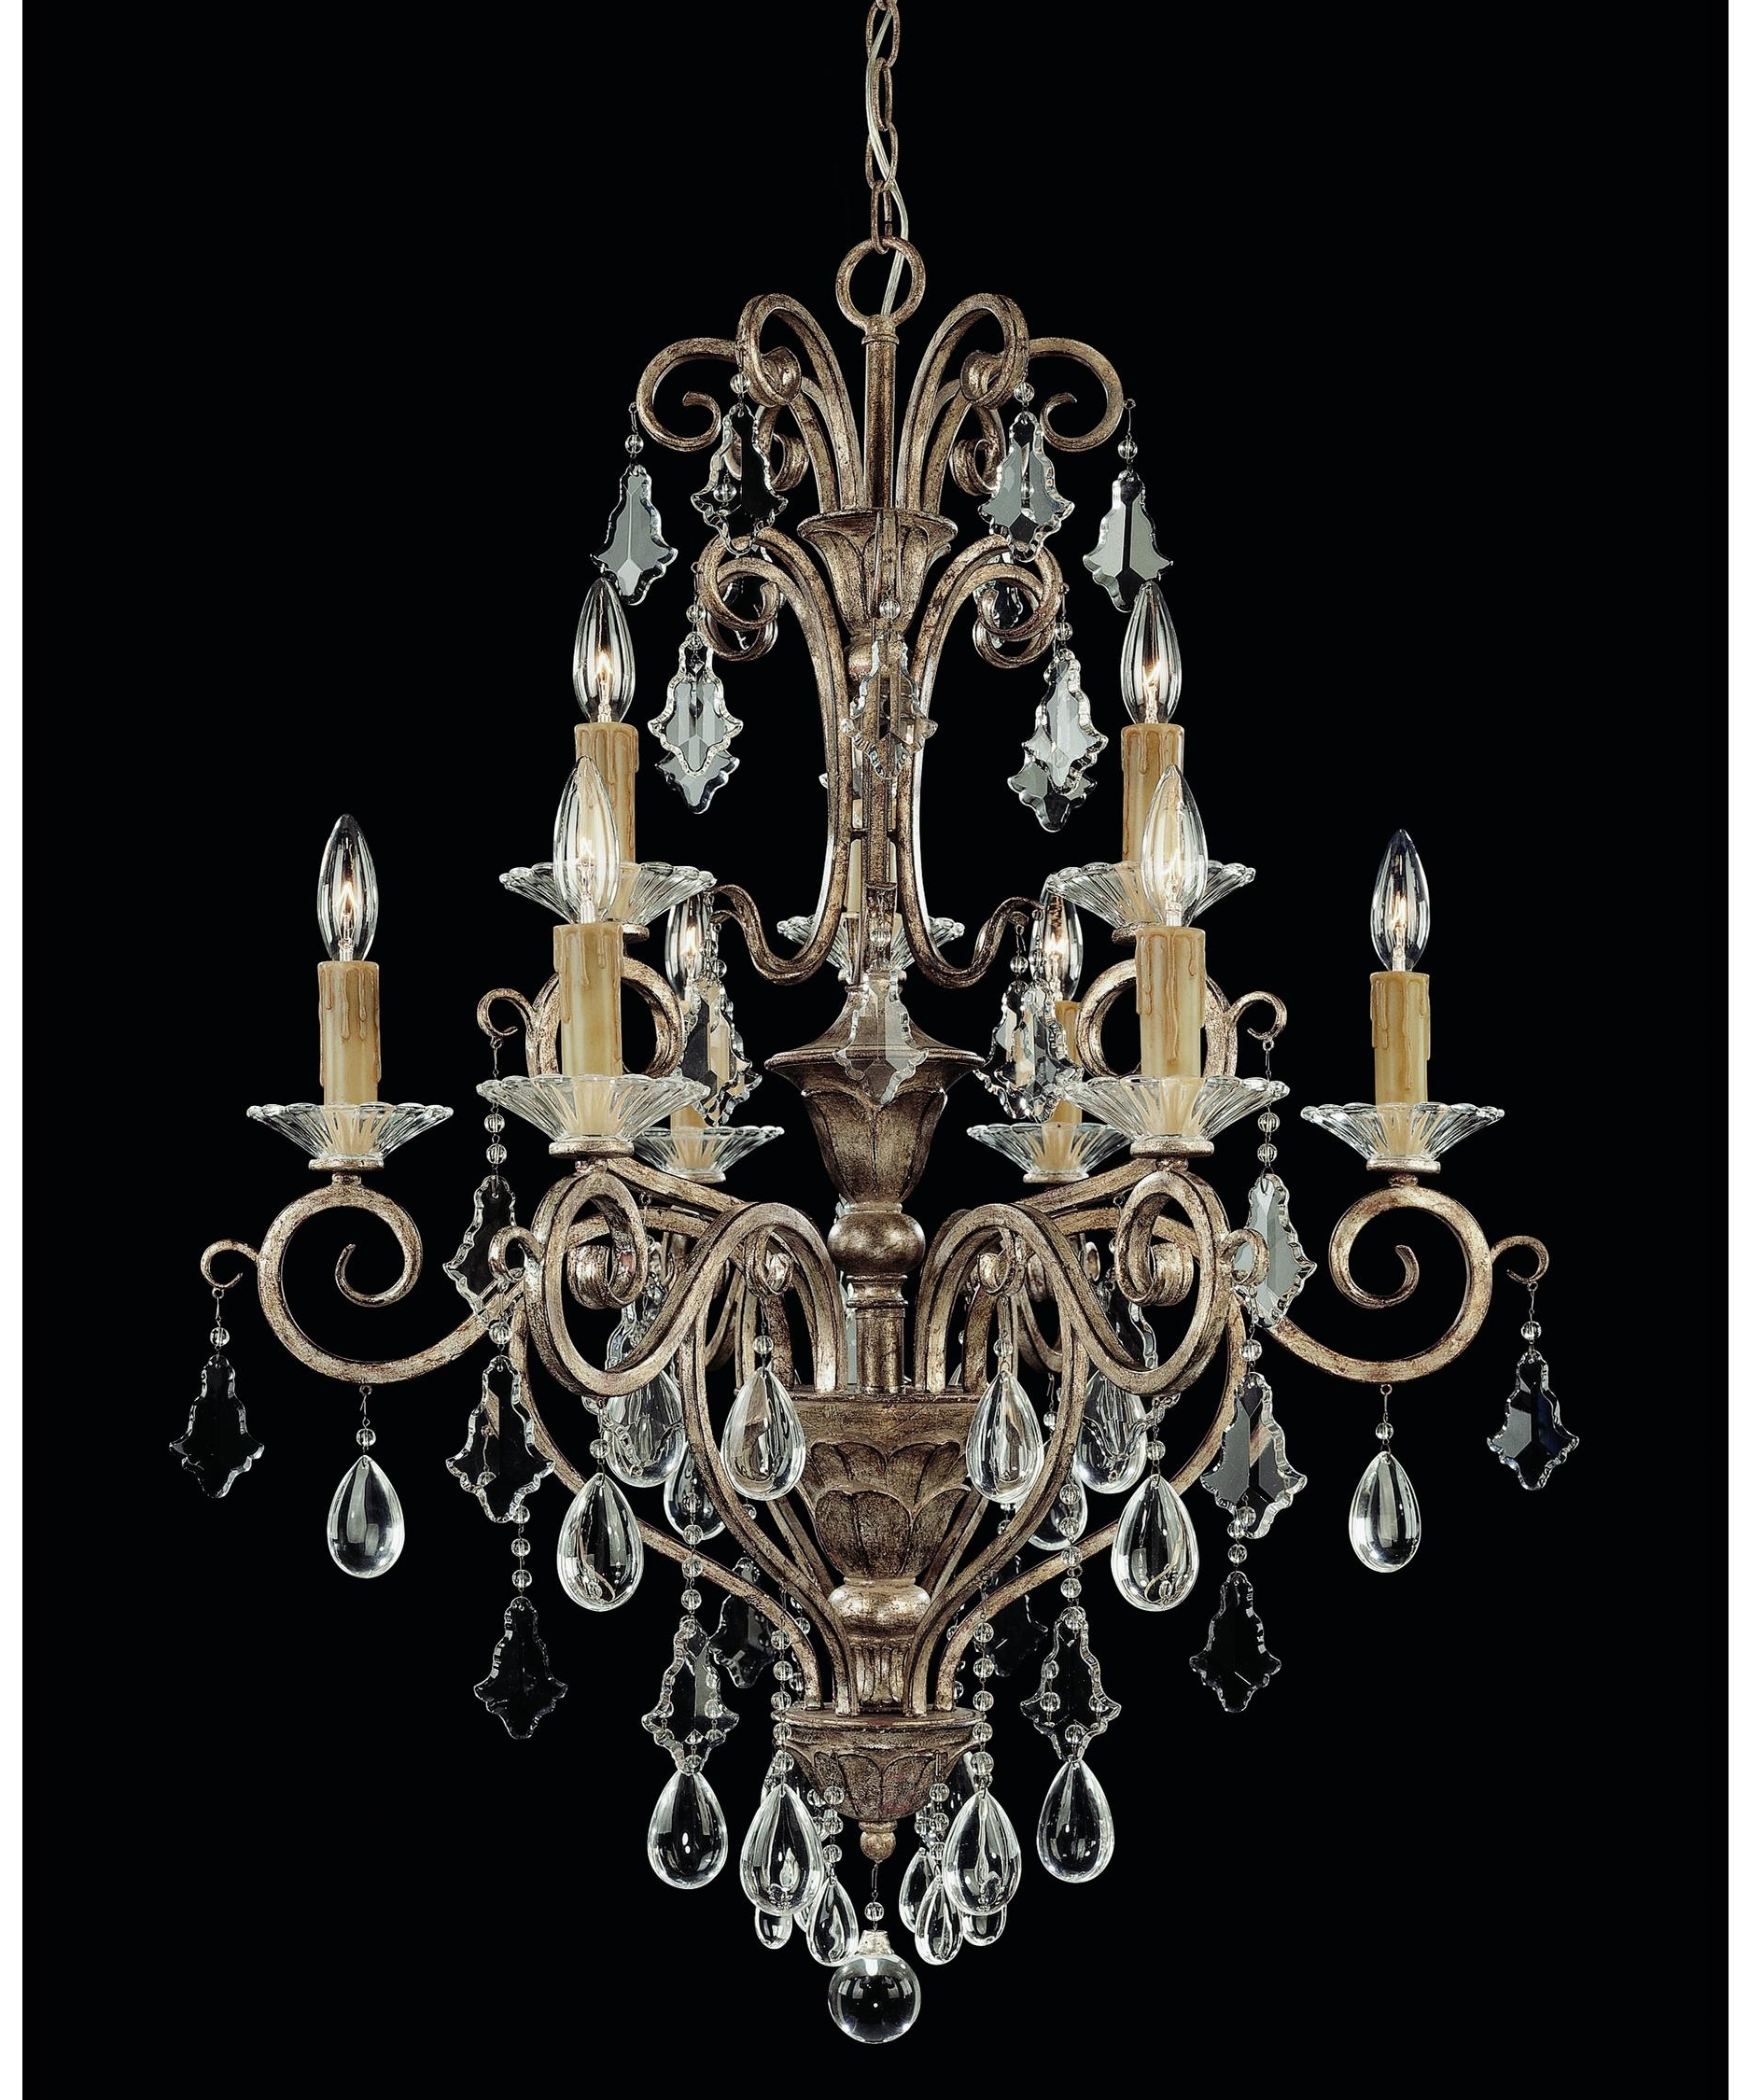 Latest Savoy House 1 1398 9 256 Antoinette 28 Inch Wide 9 Light Chandelier Inside Savoy House Chandeliers (View 9 of 20)